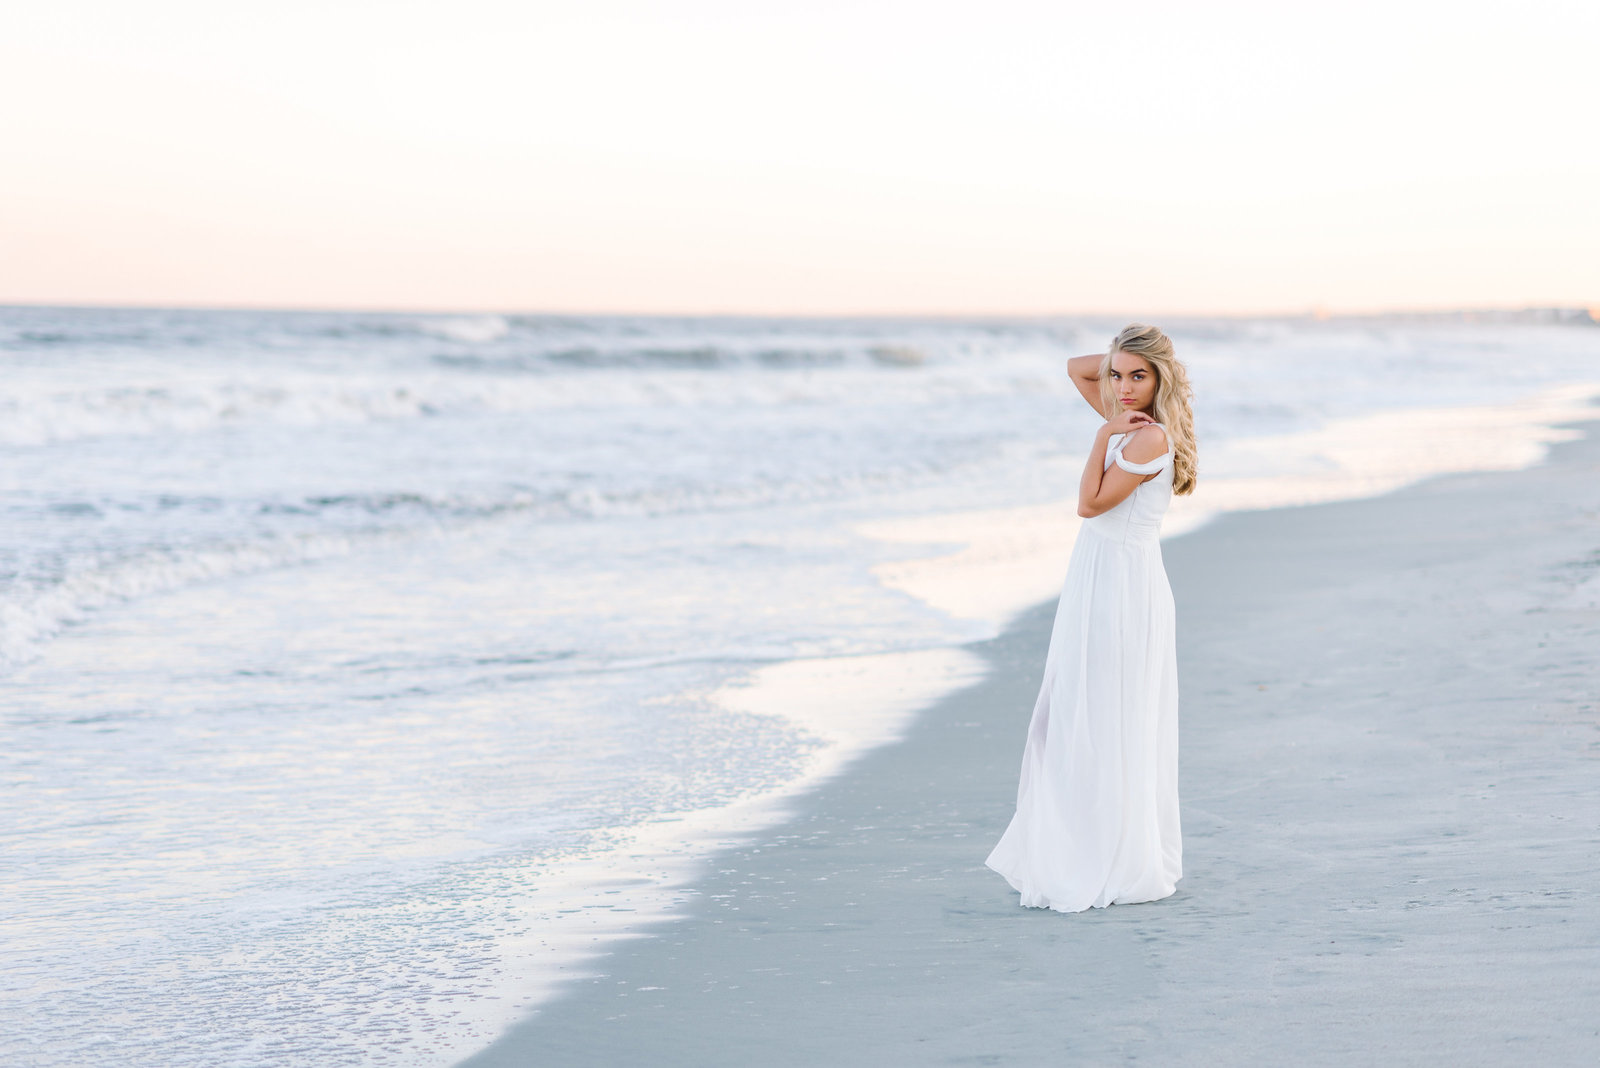 Senior girl on the beach - fashionable senior portraits in Myrtle Beach